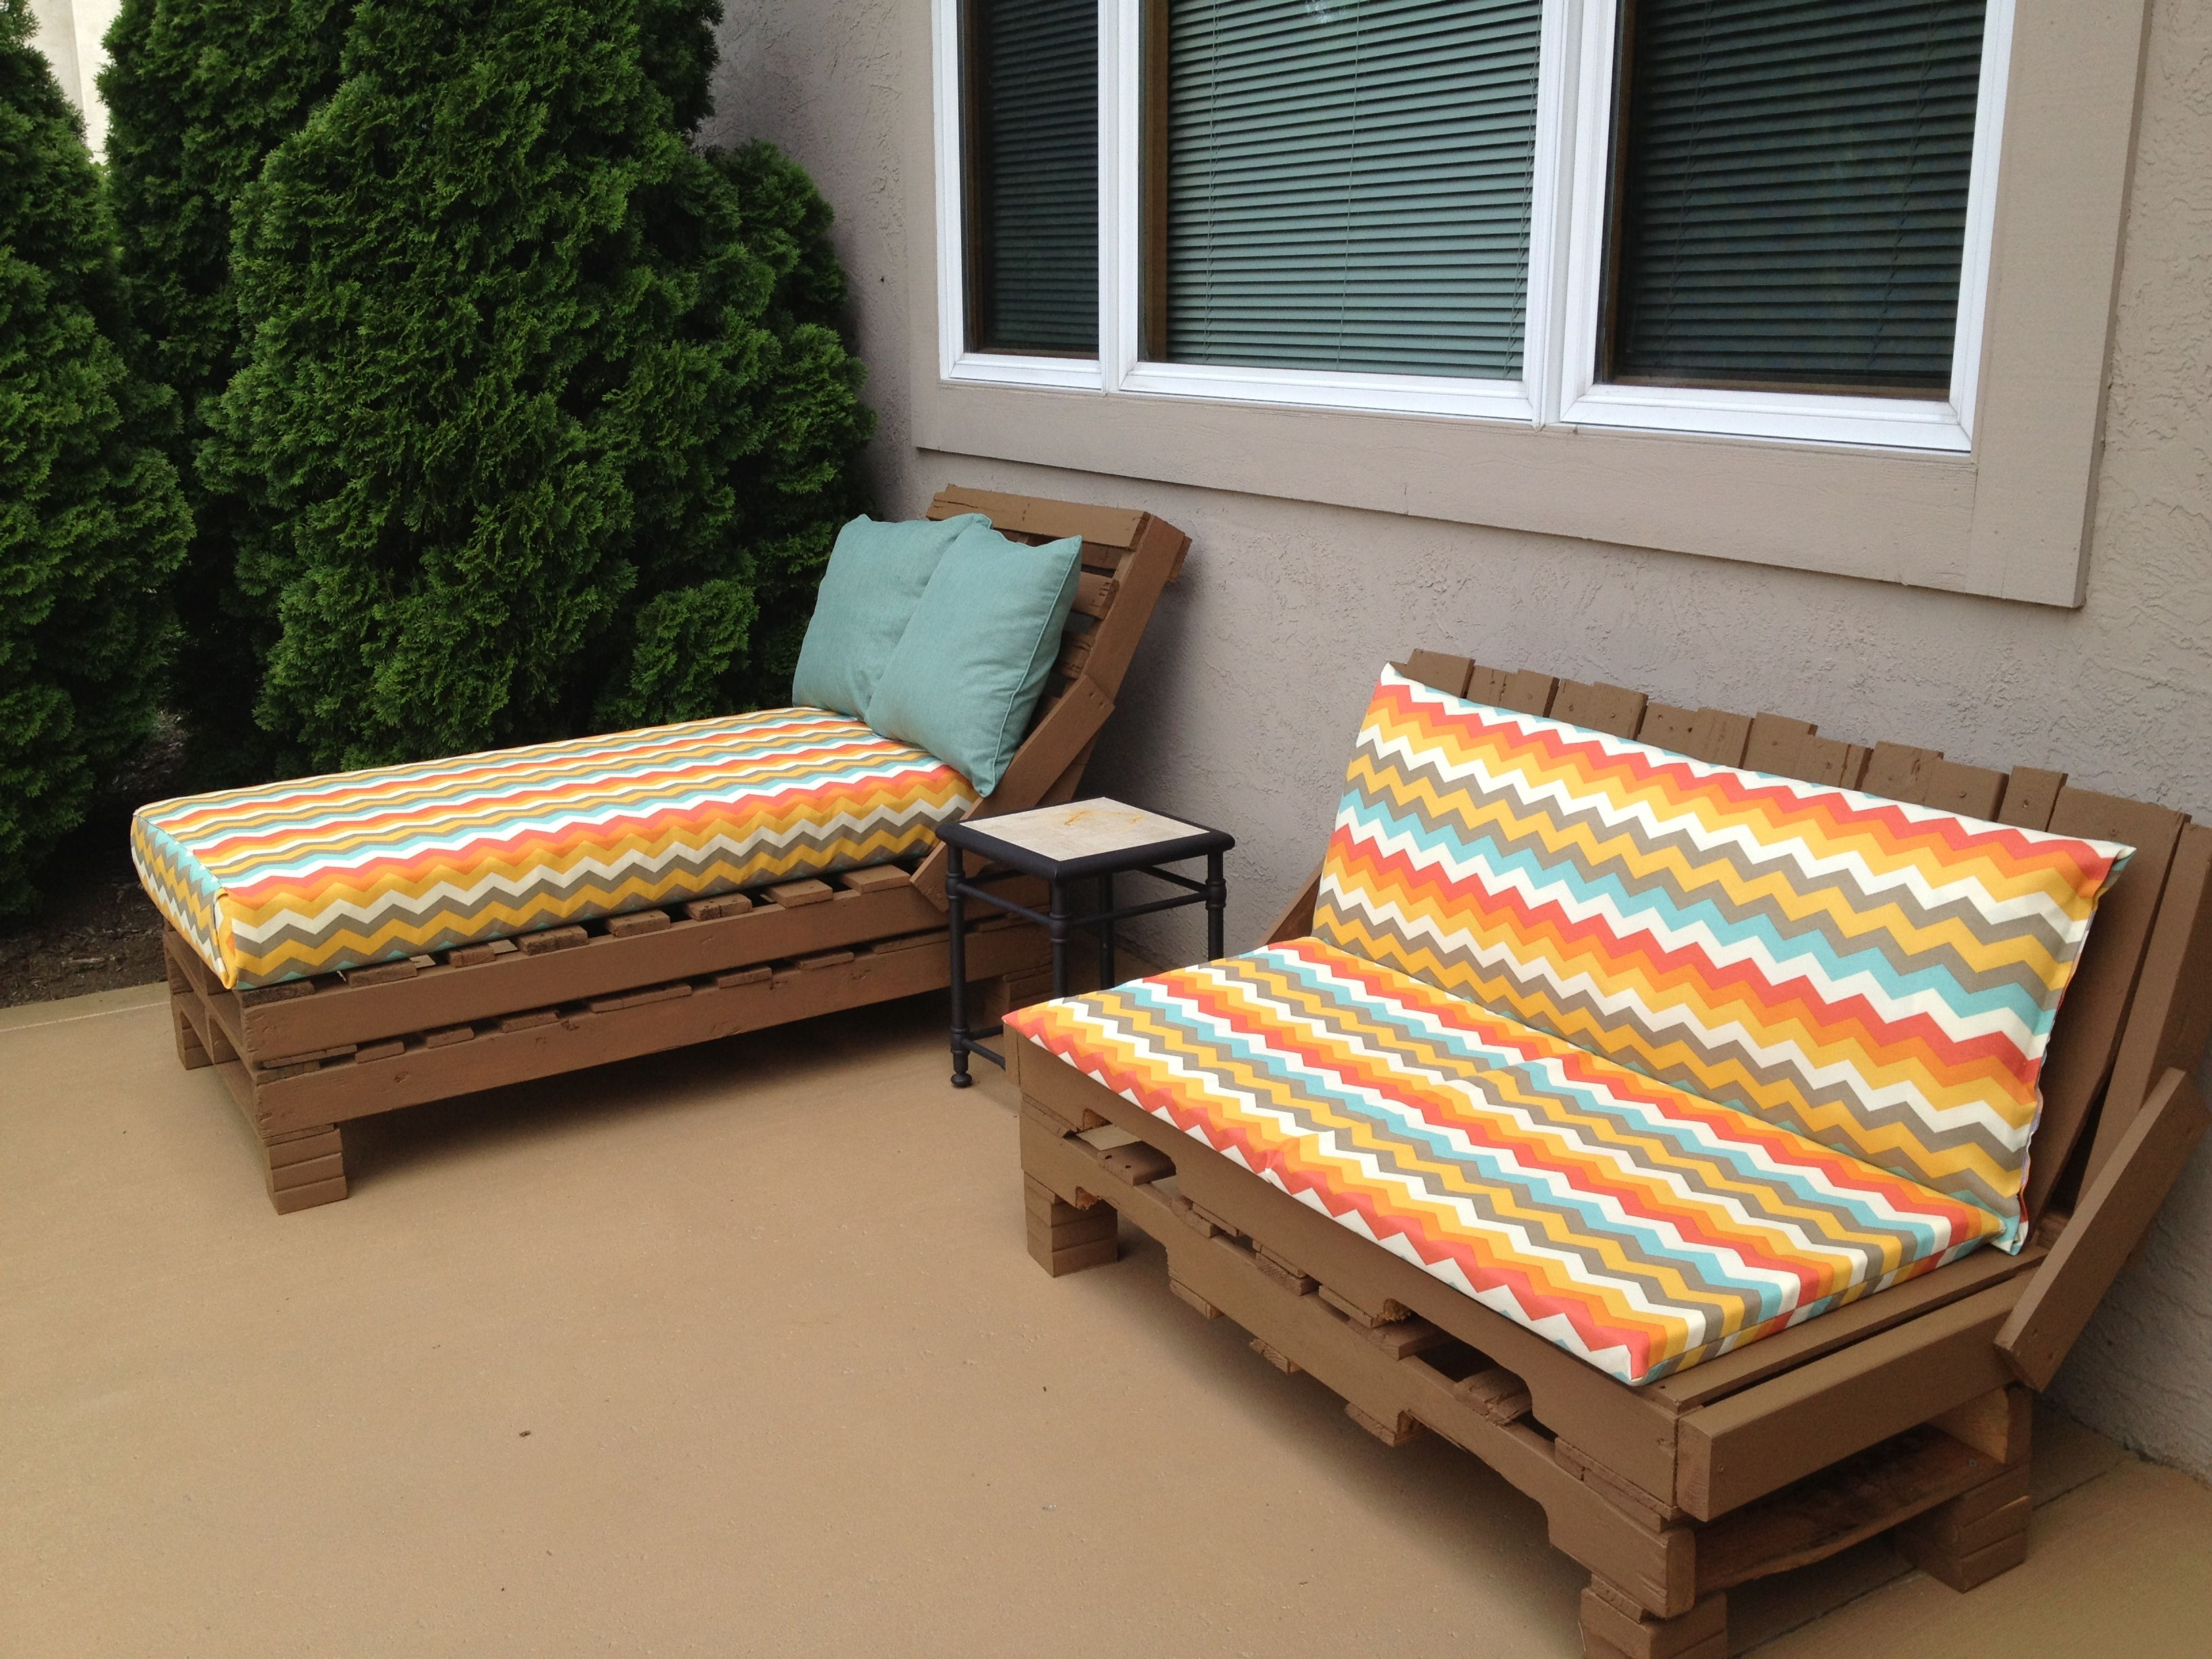 pallet outdoor furniture plans. pallet bench projects benches made with wooden pallets recycled upcycled diy ideas and other furniture plans outdoor